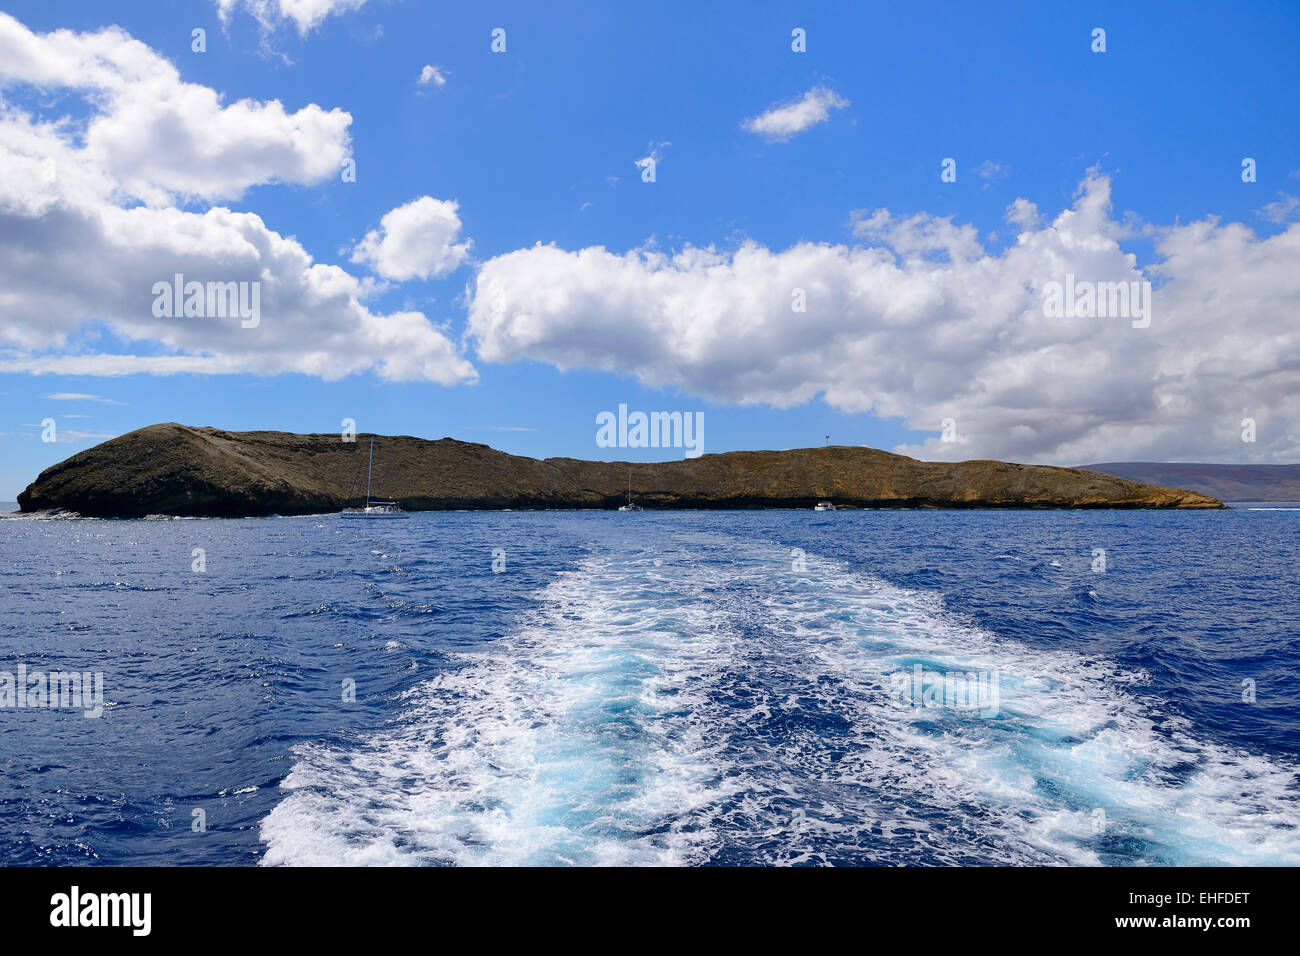 Departure by boat from Molokini Island (exposed rim of submerged volcano), Maui, Hawaii, USA - Stock Image